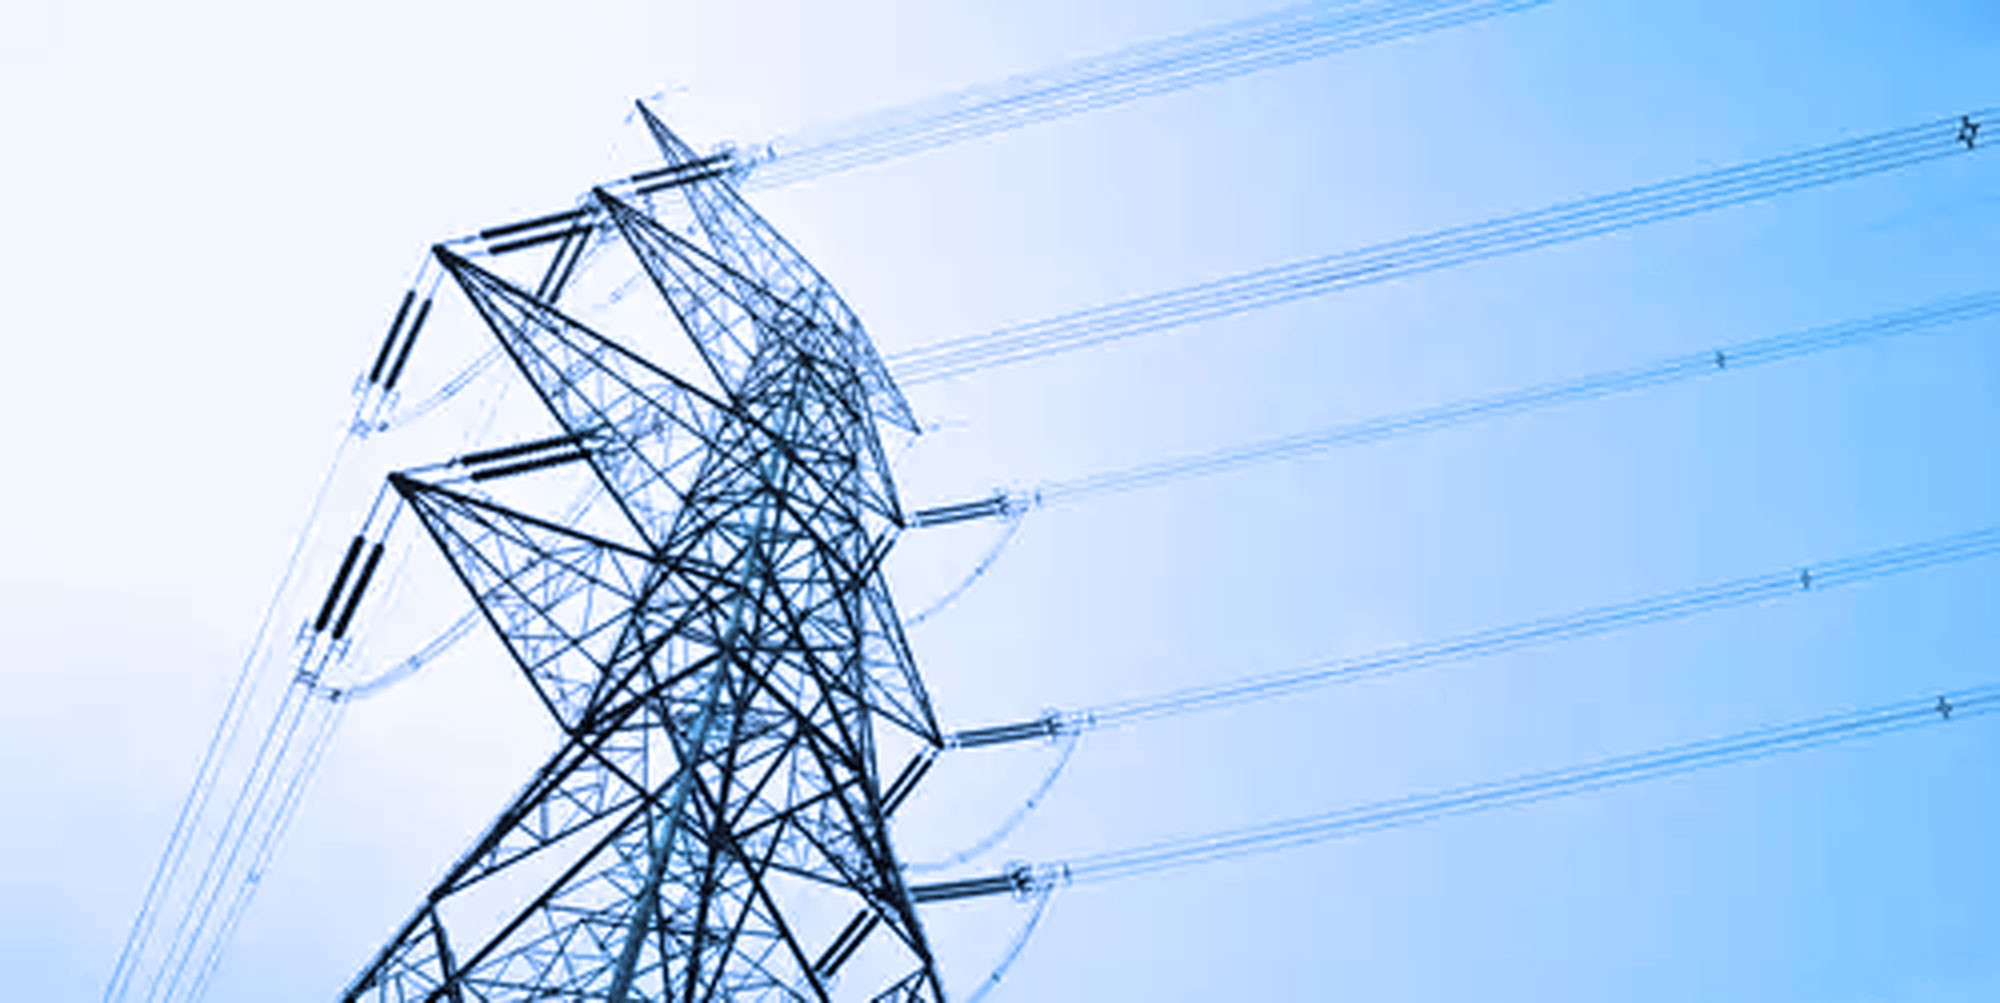 Maintenance of transmission lines | Electrical & Power Review